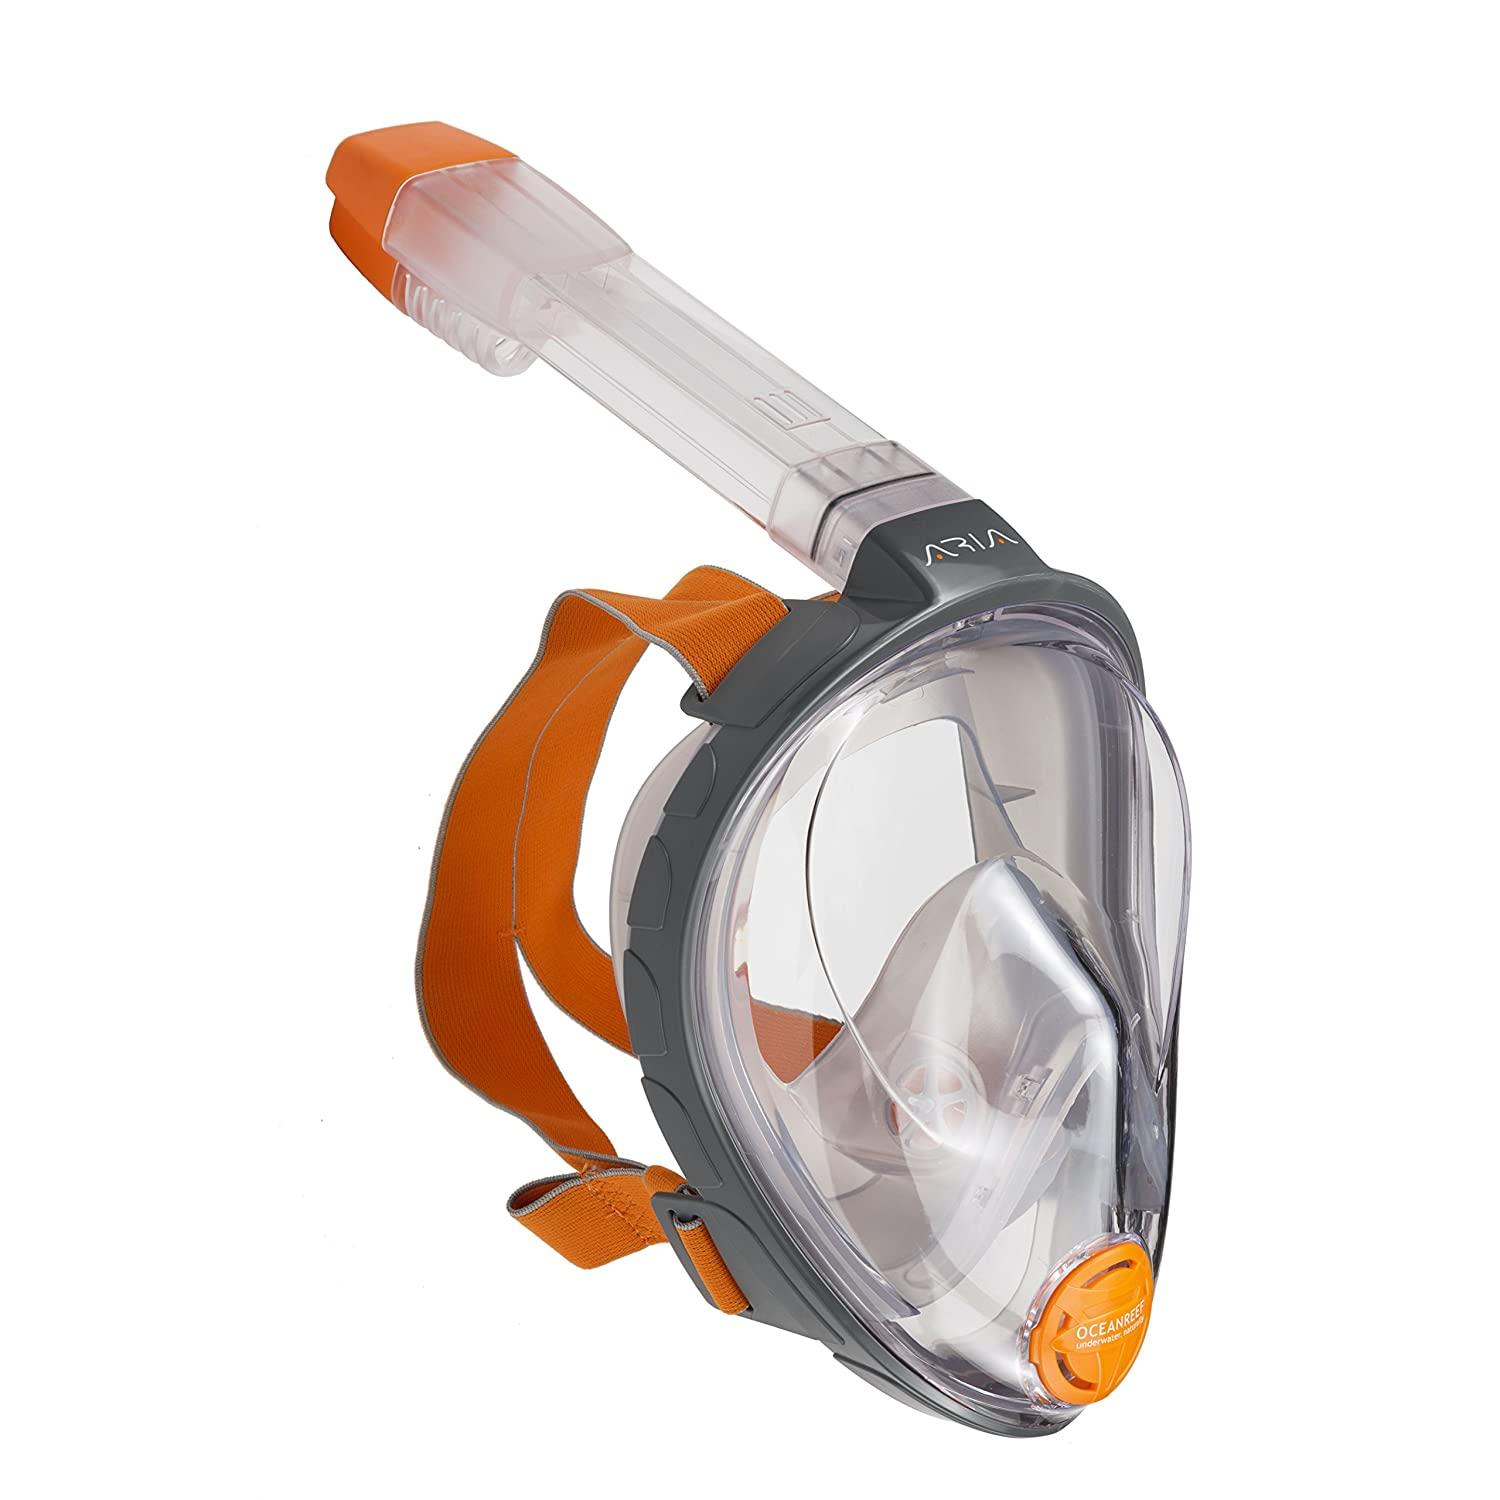 6. Ocean Reef Aria Full Face Snorkel Mask